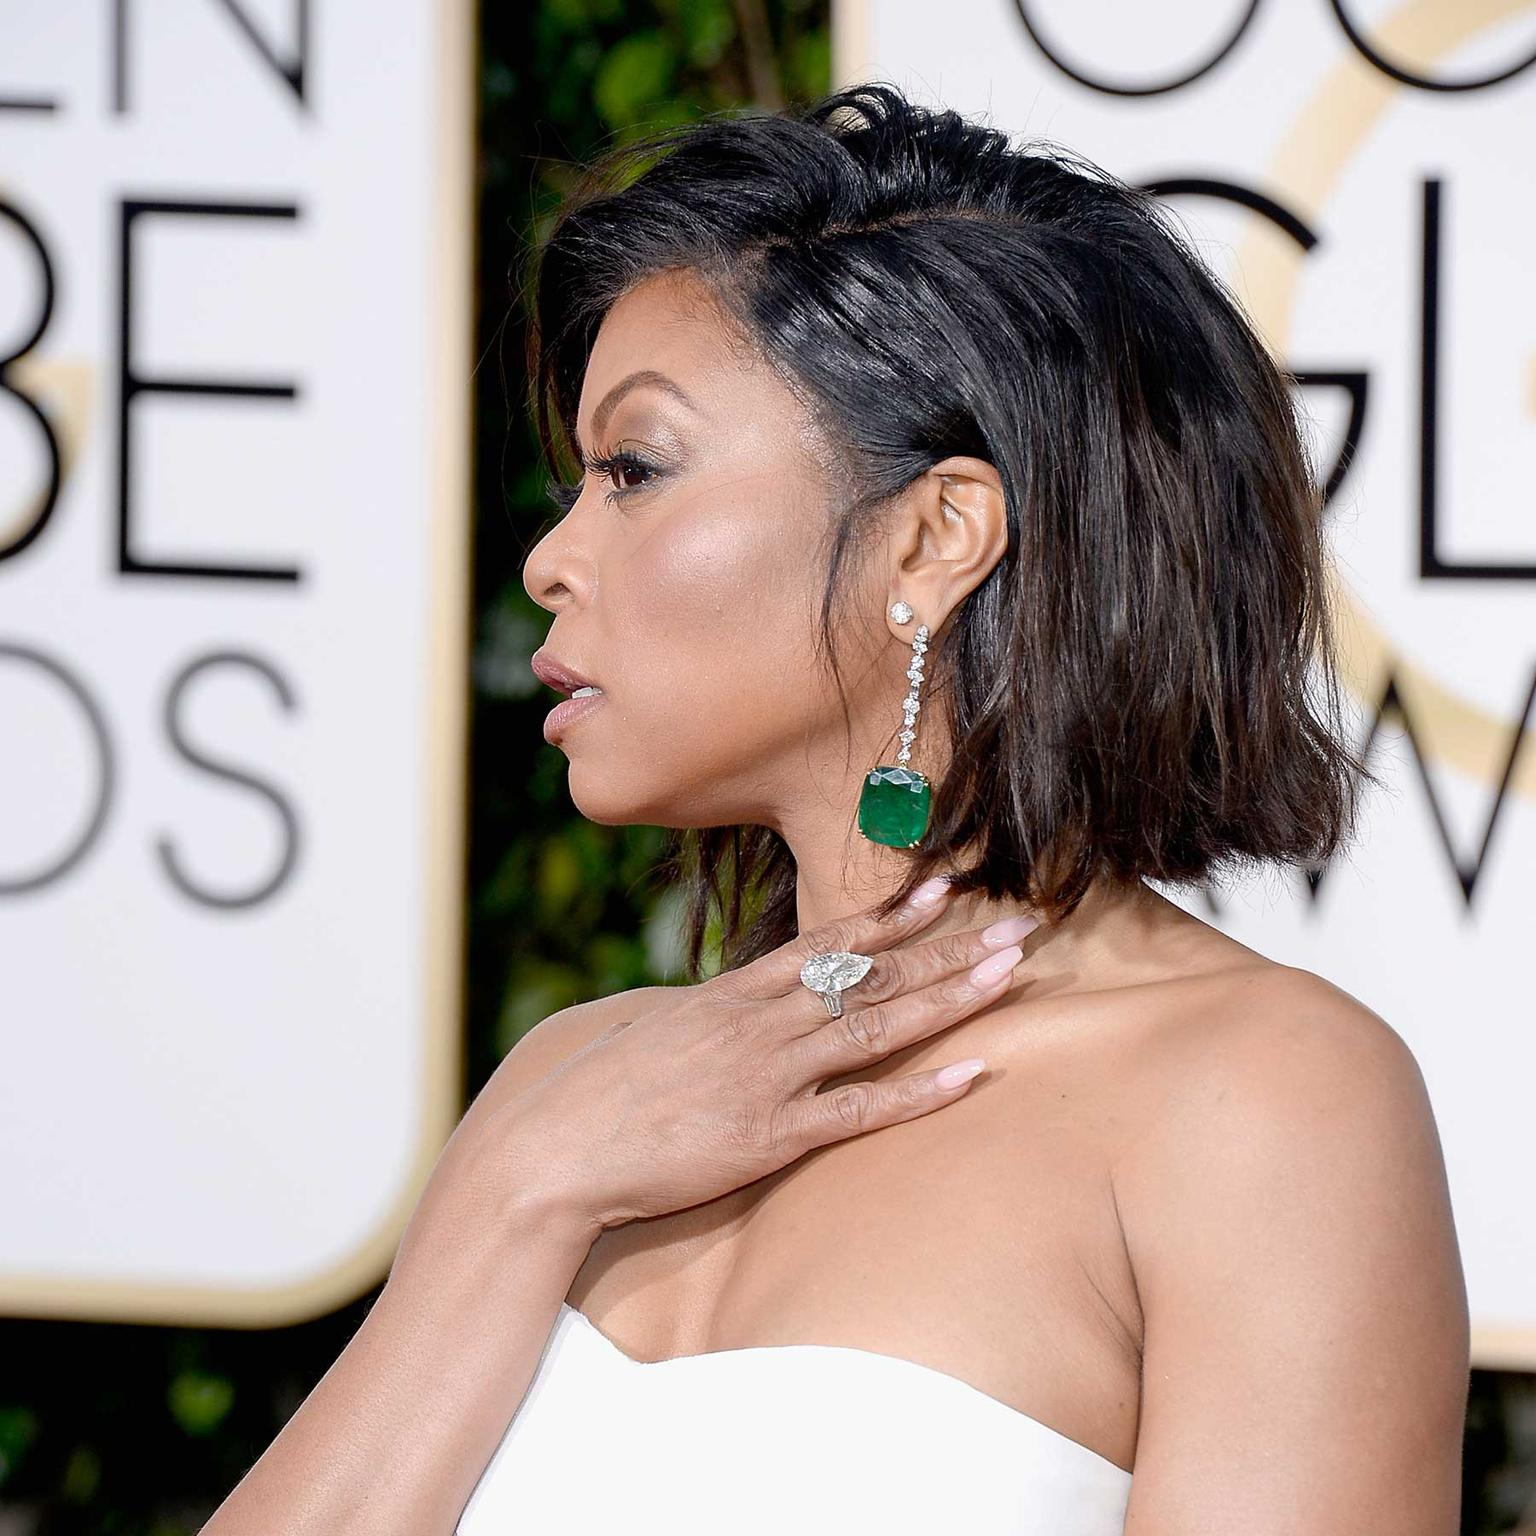 Taraji P Henson wore giant emerald drops by Kimberly McDonald for Gemfields to the Golden Globes 2016